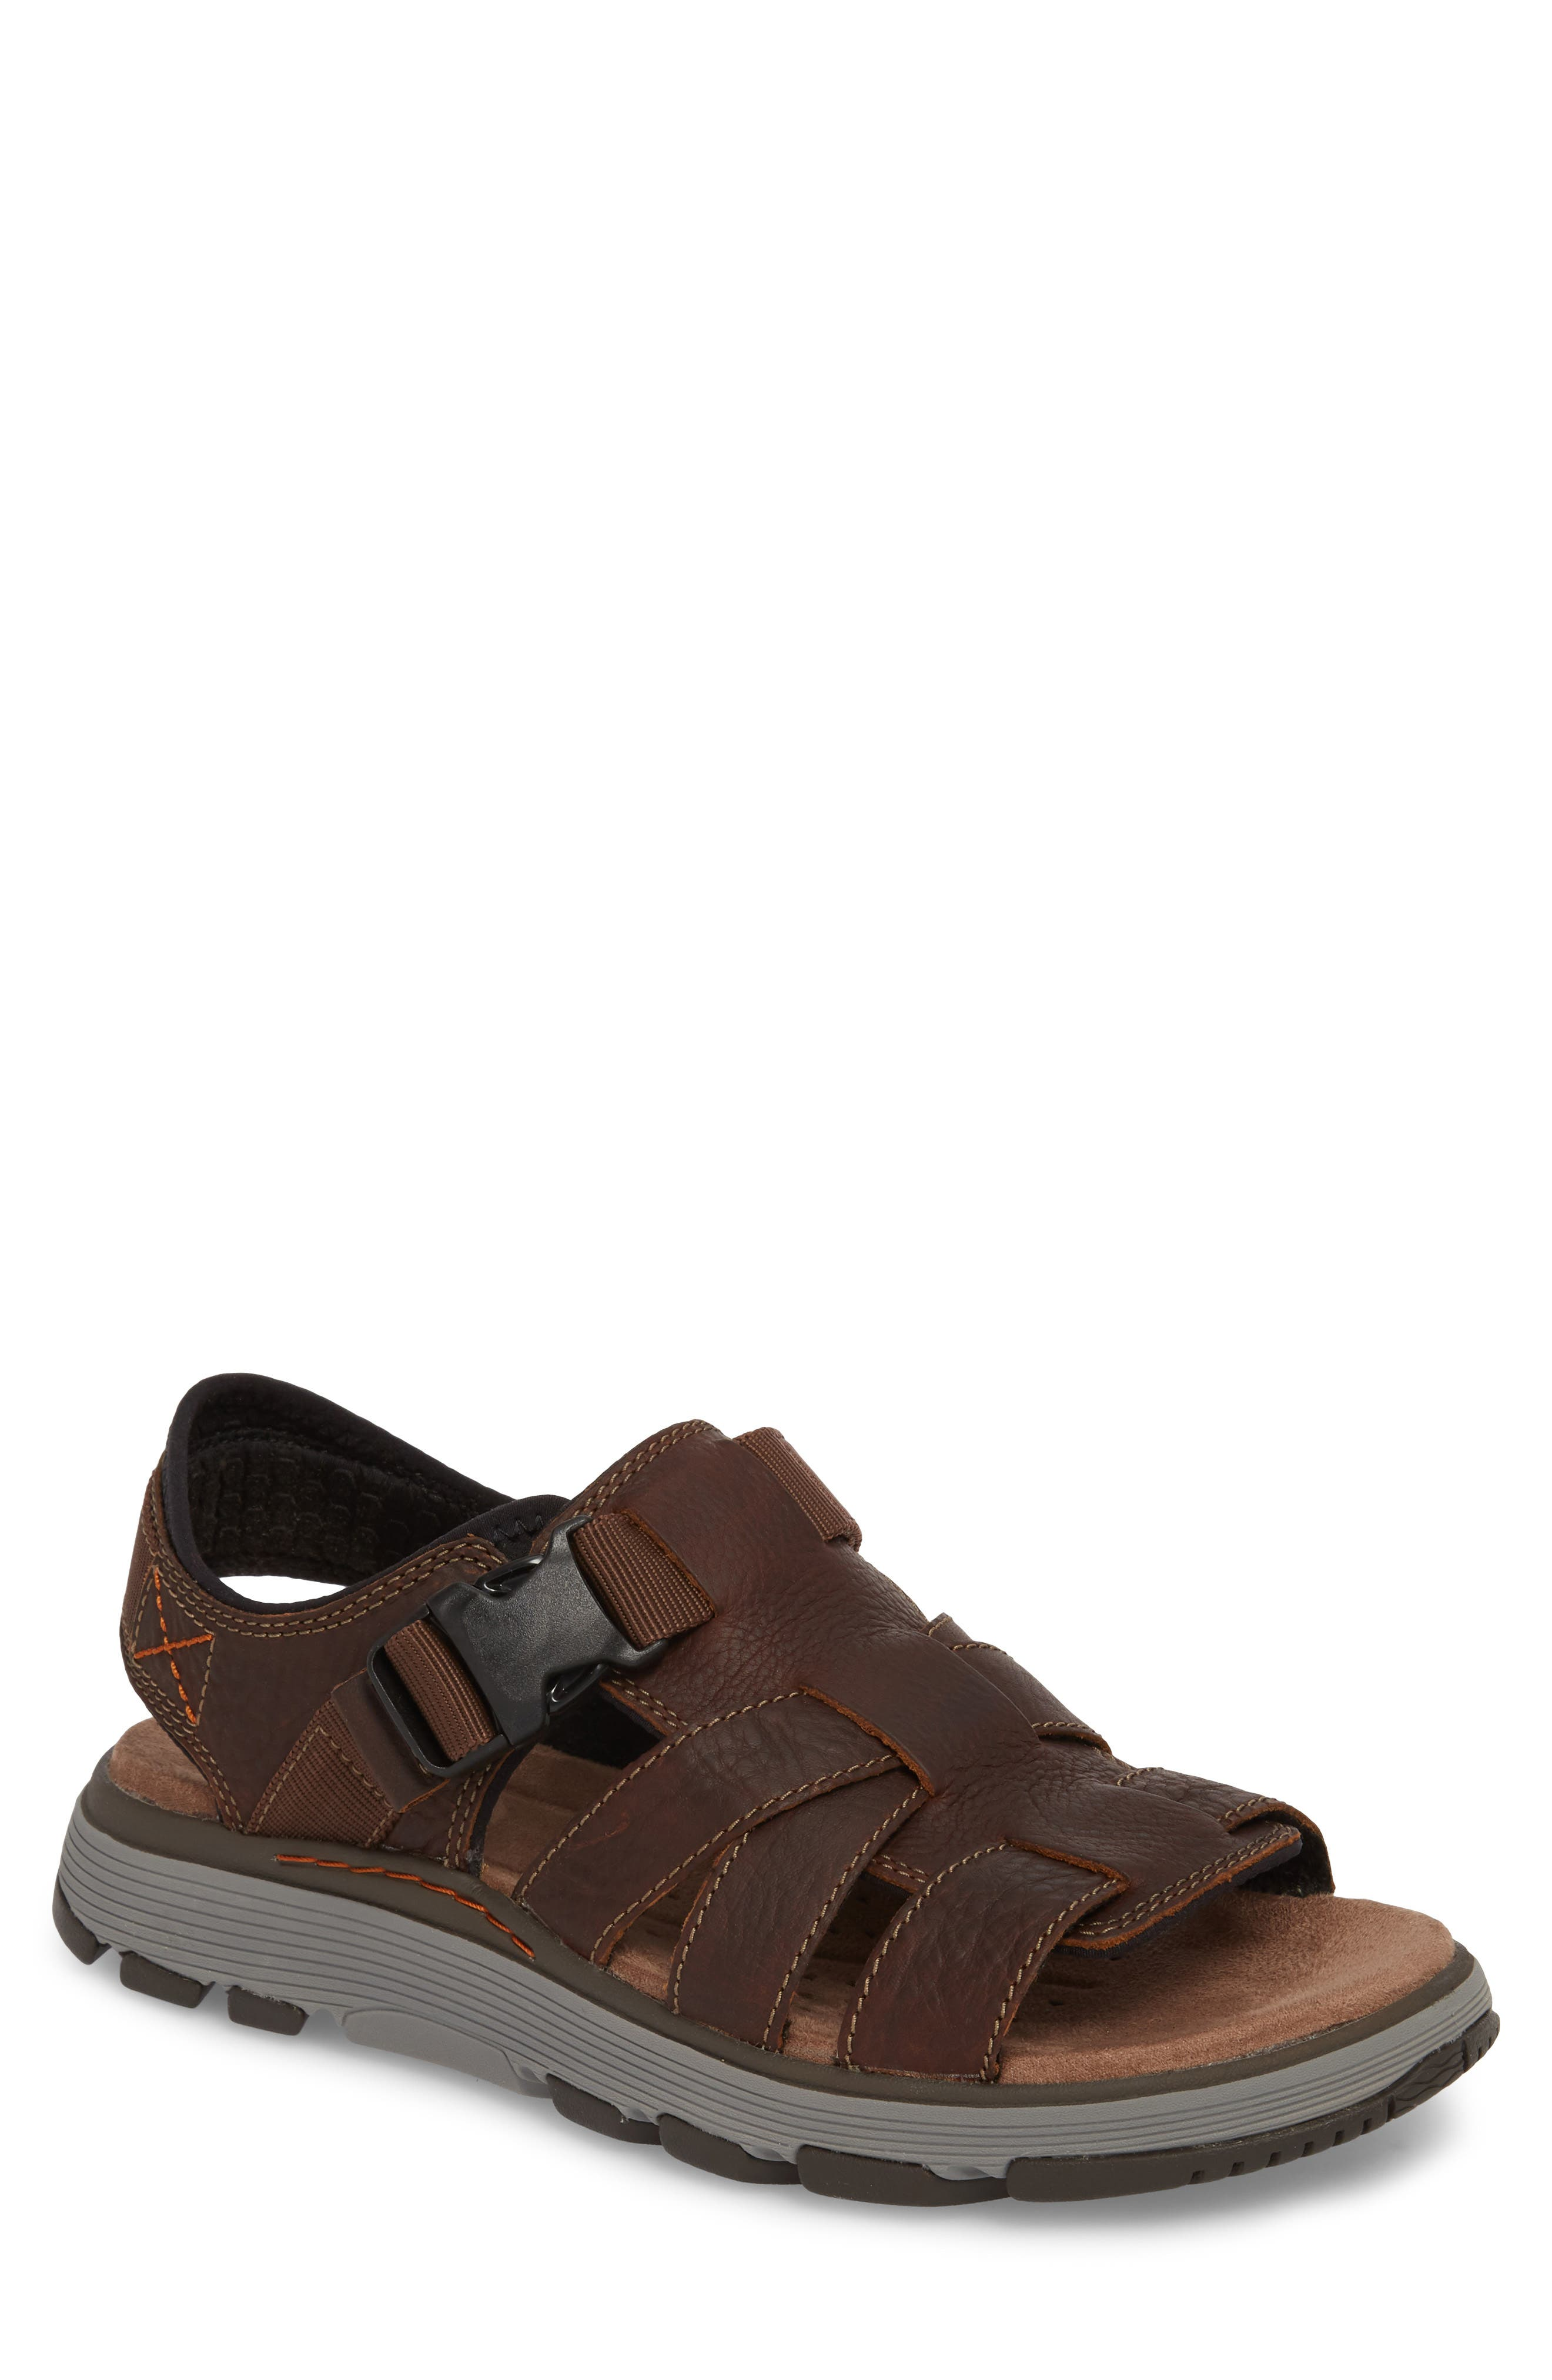 Clarks<sup>®</sup> Untrek Cove Fisherman Sandal,                             Main thumbnail 1, color,